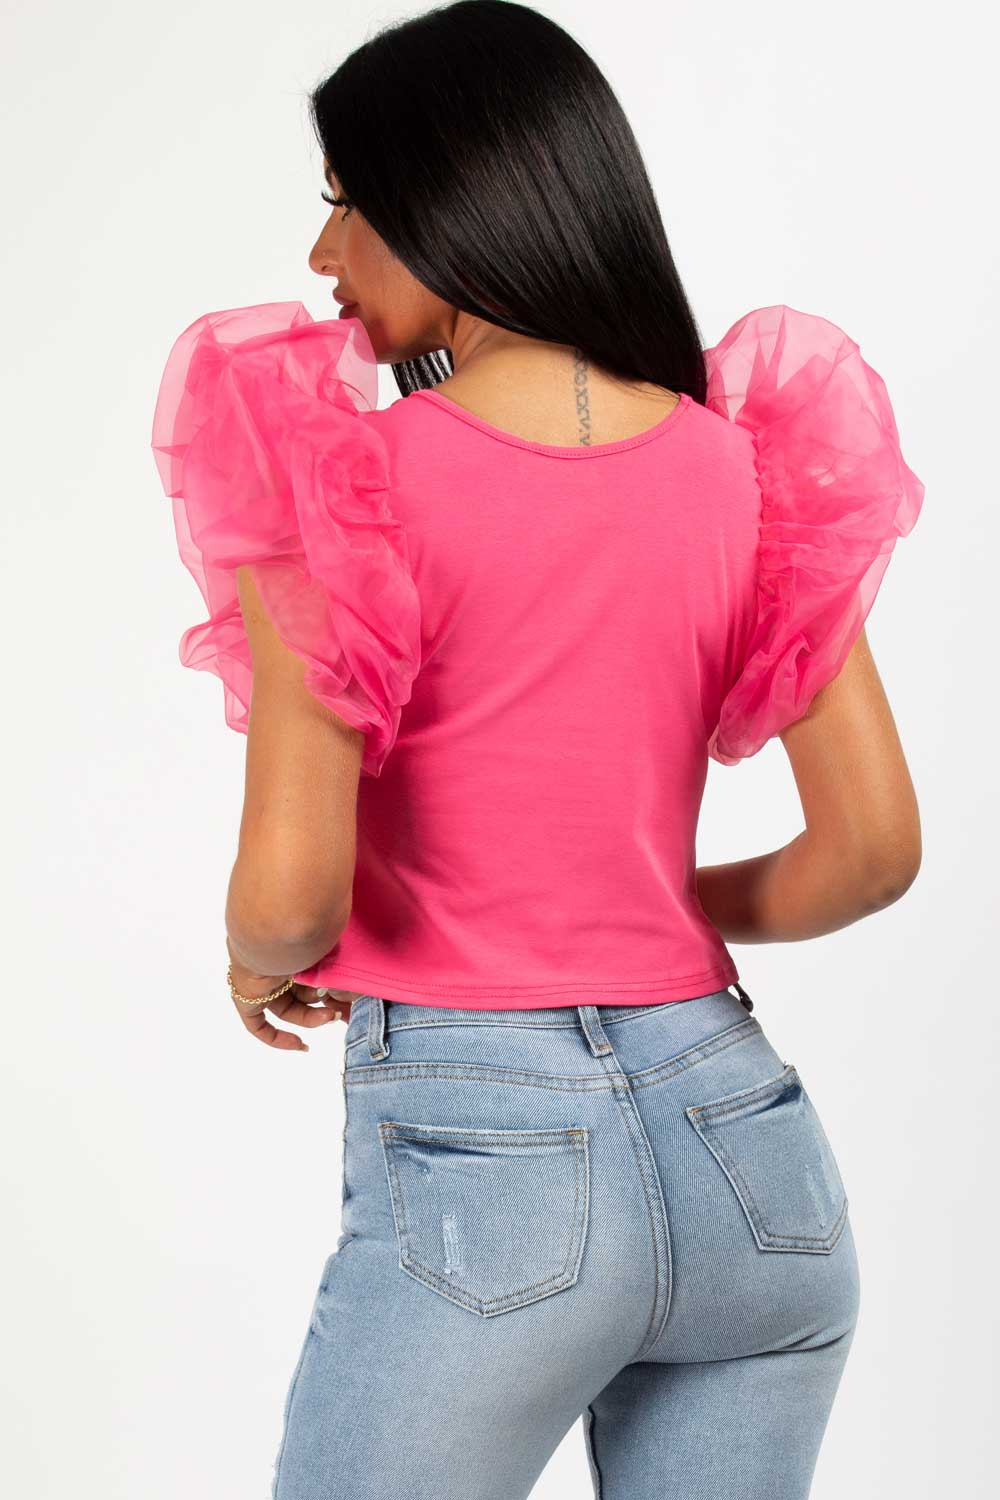 puff sleeve tee shirt pink